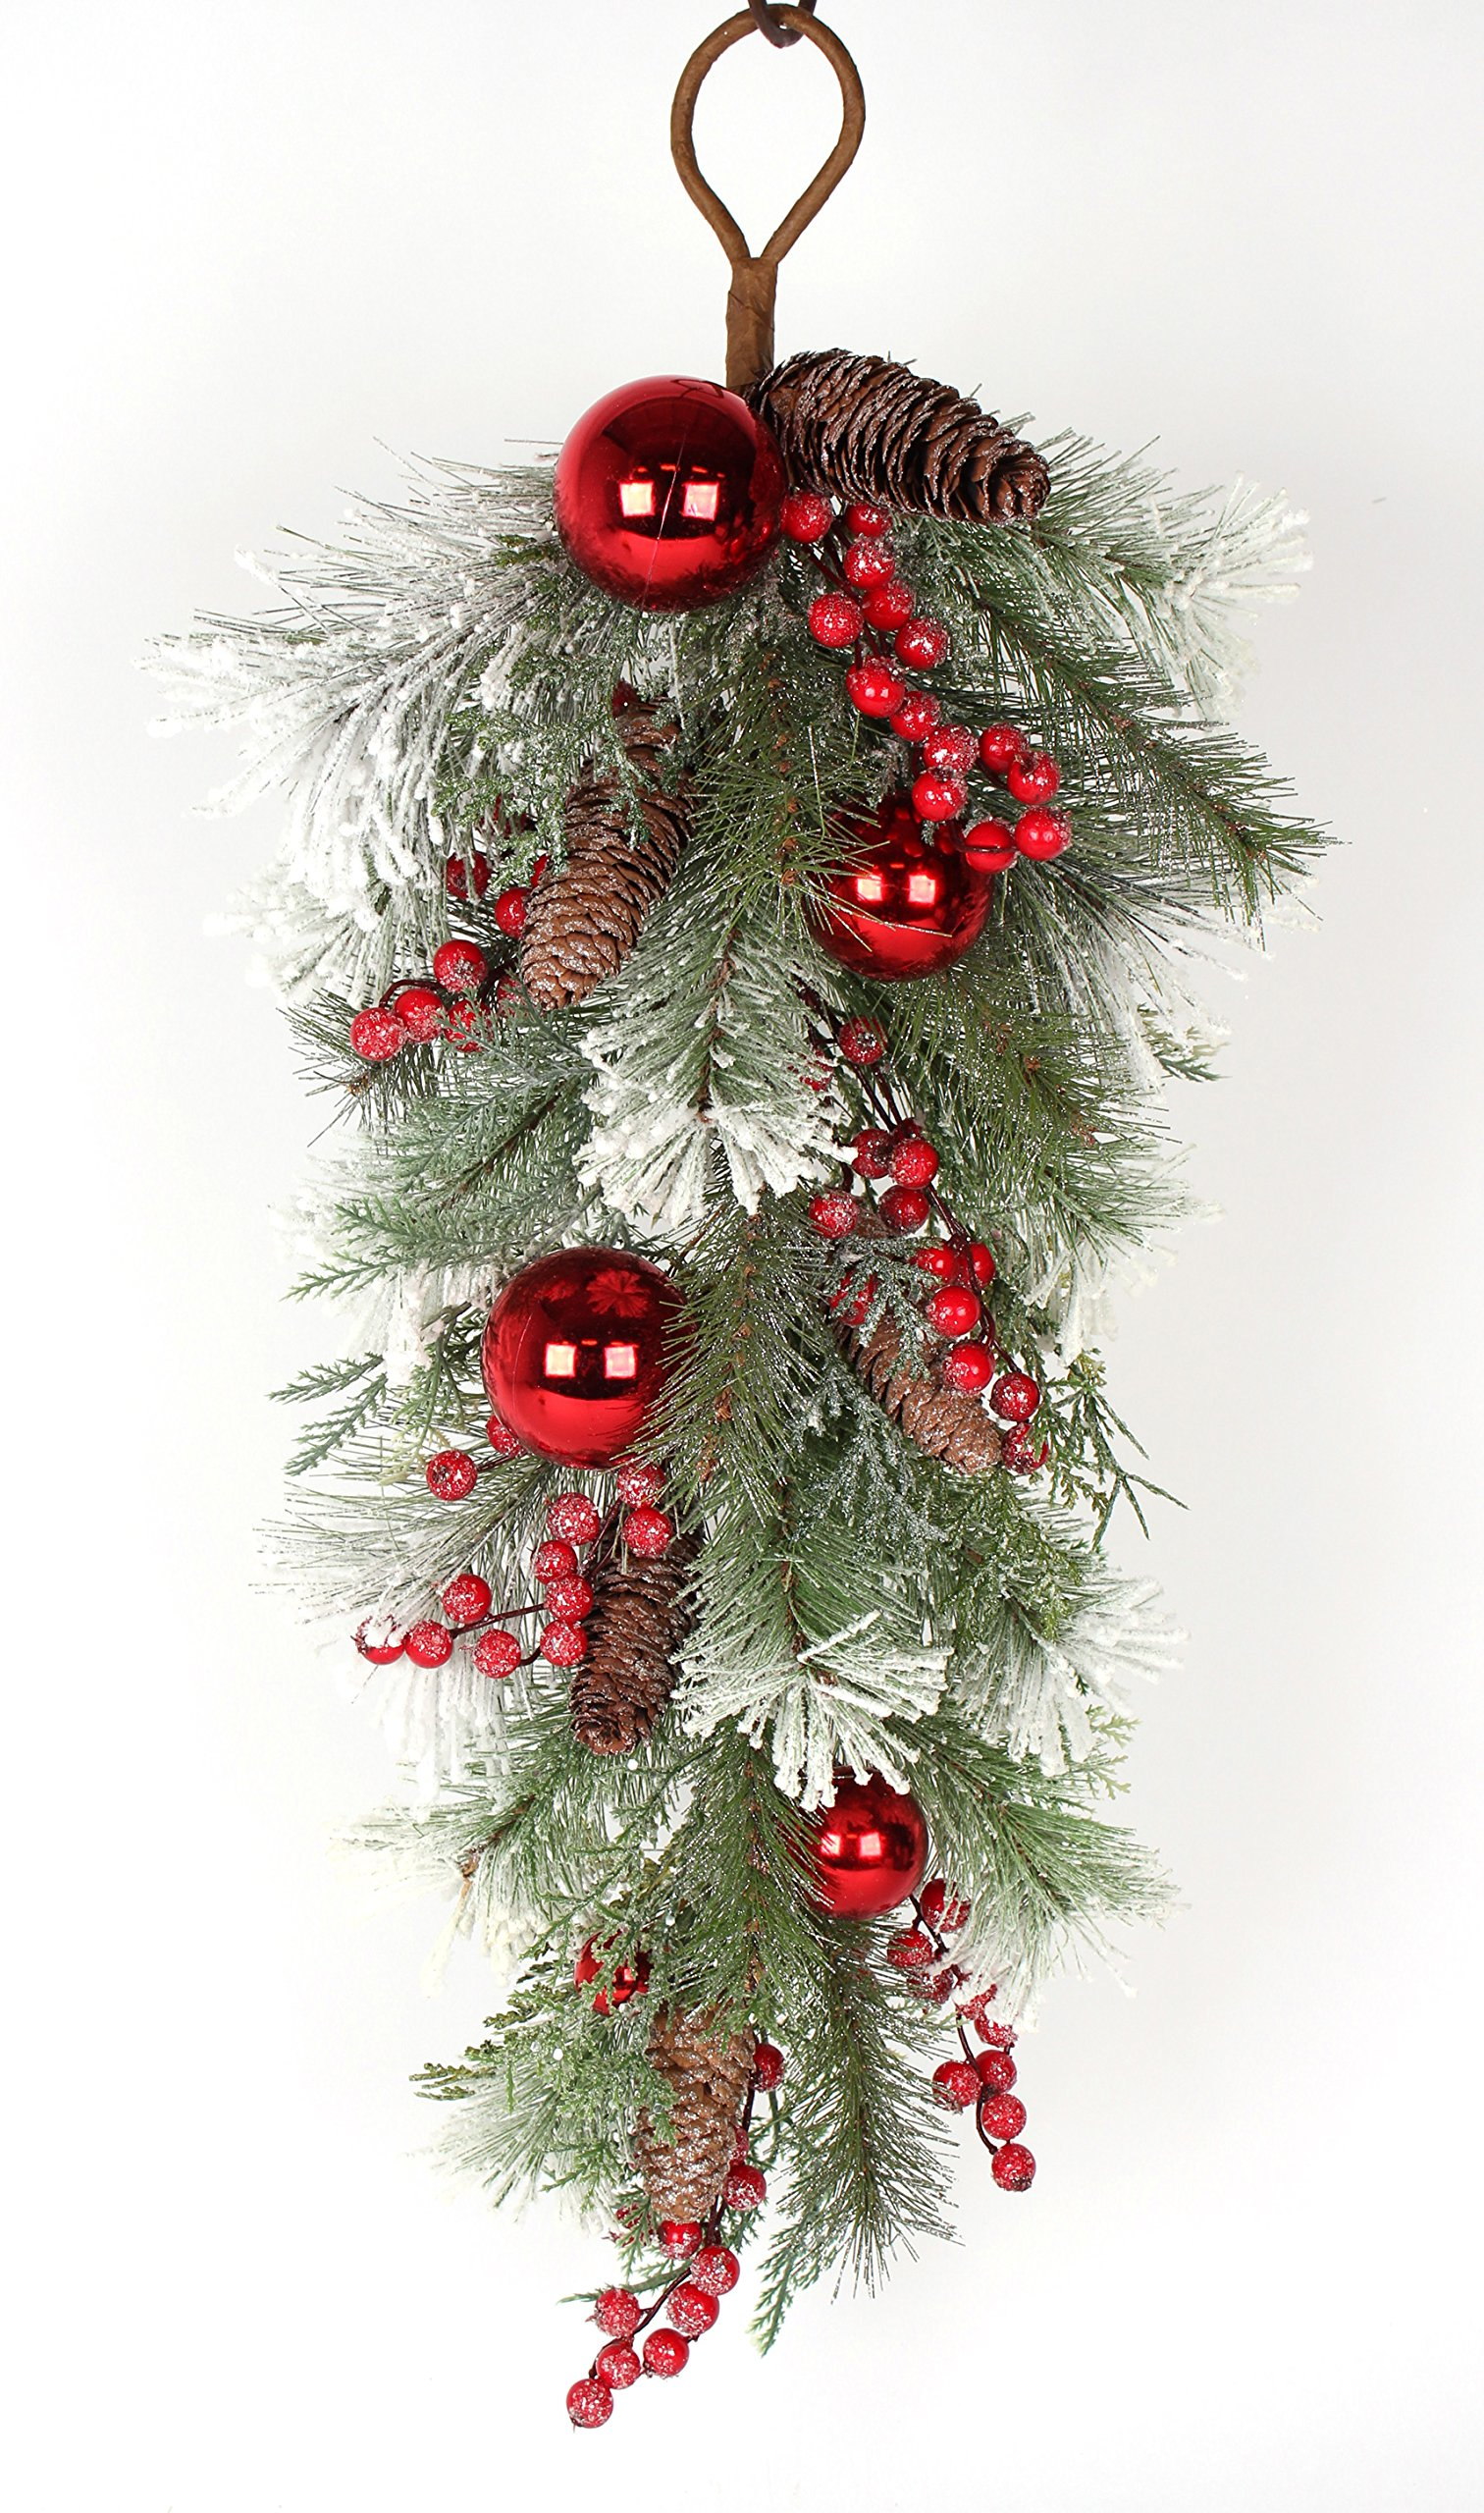 32 Inch Artificial Mixed Pine Christmas Teardrop Swag With Snow, Crystals, Berries, Pine Cones and Red Ball Ornaments